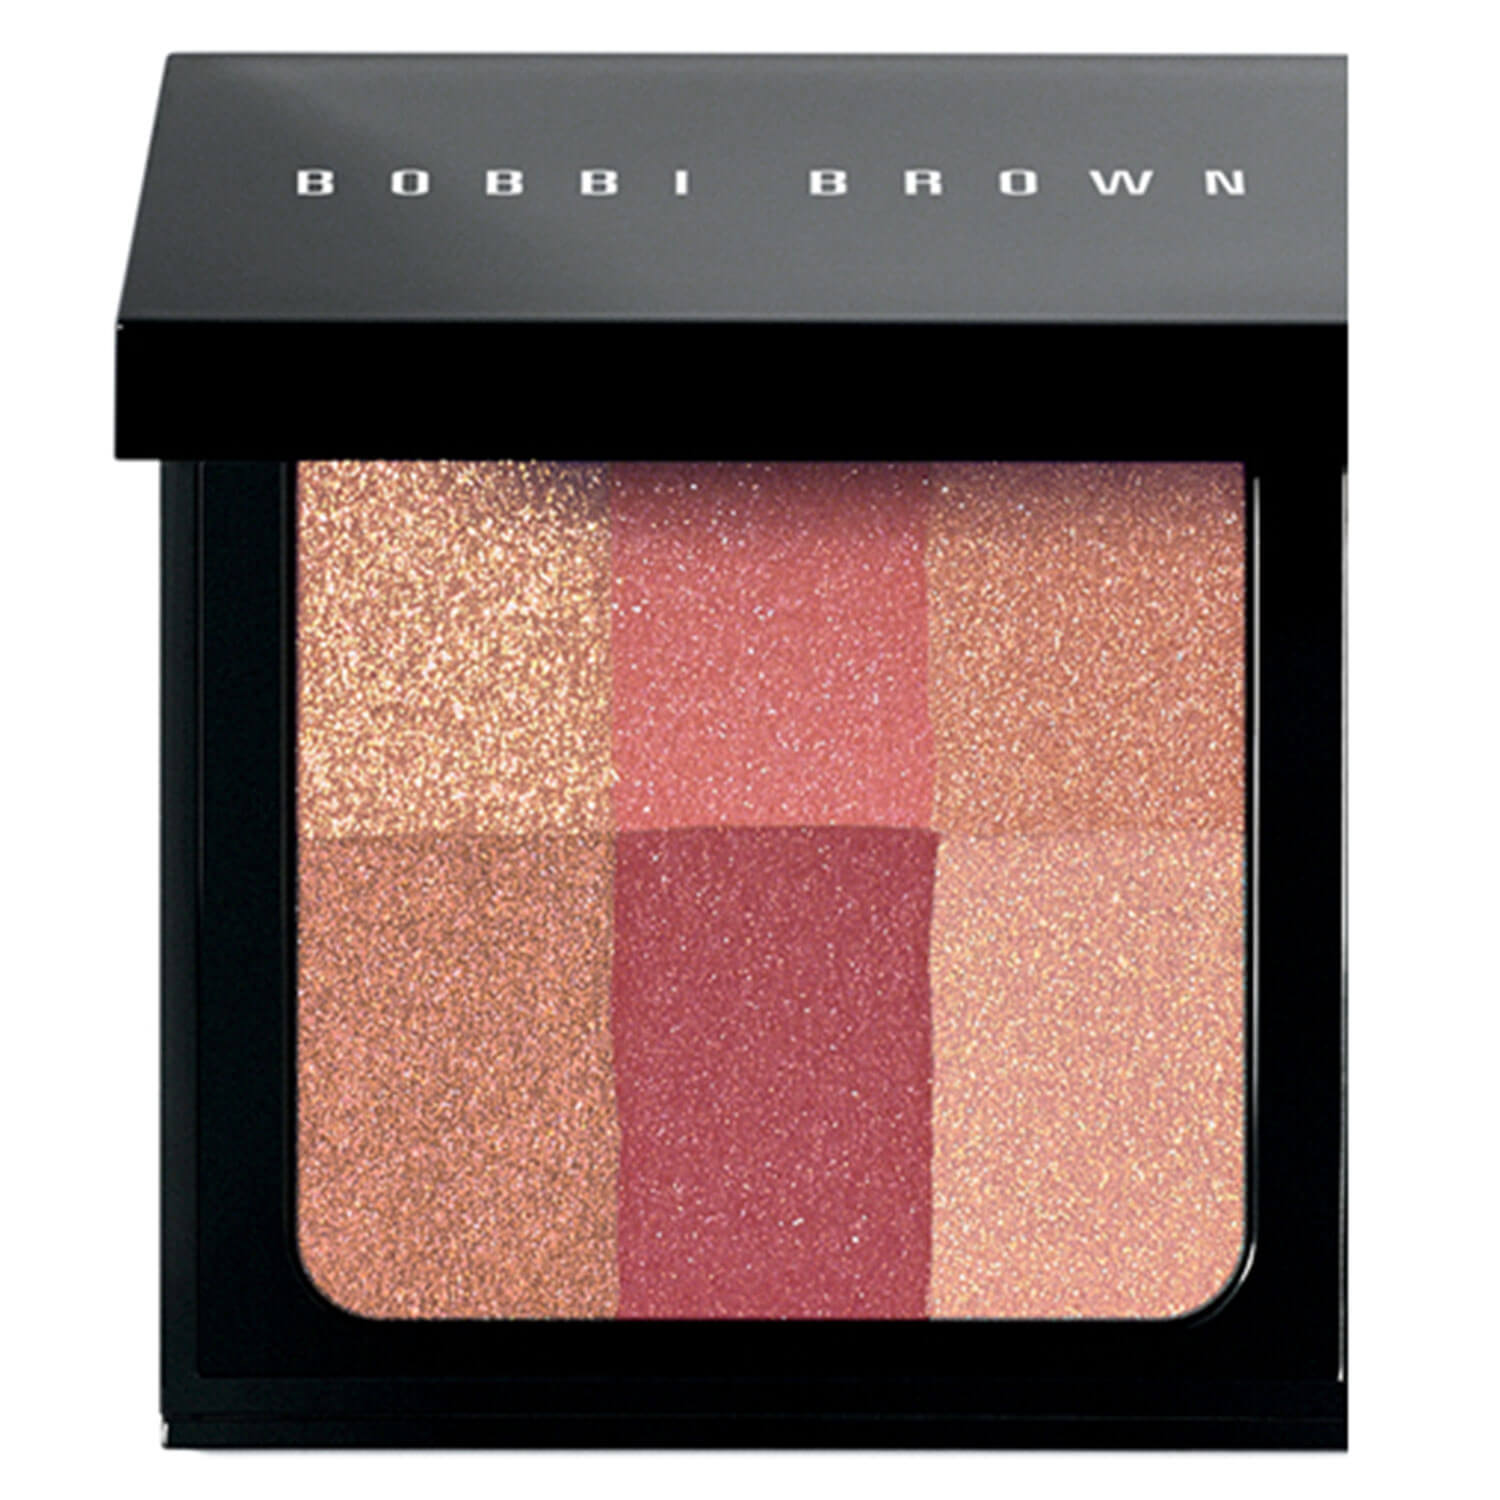 BB Blush - Brightening Brick Cranberry